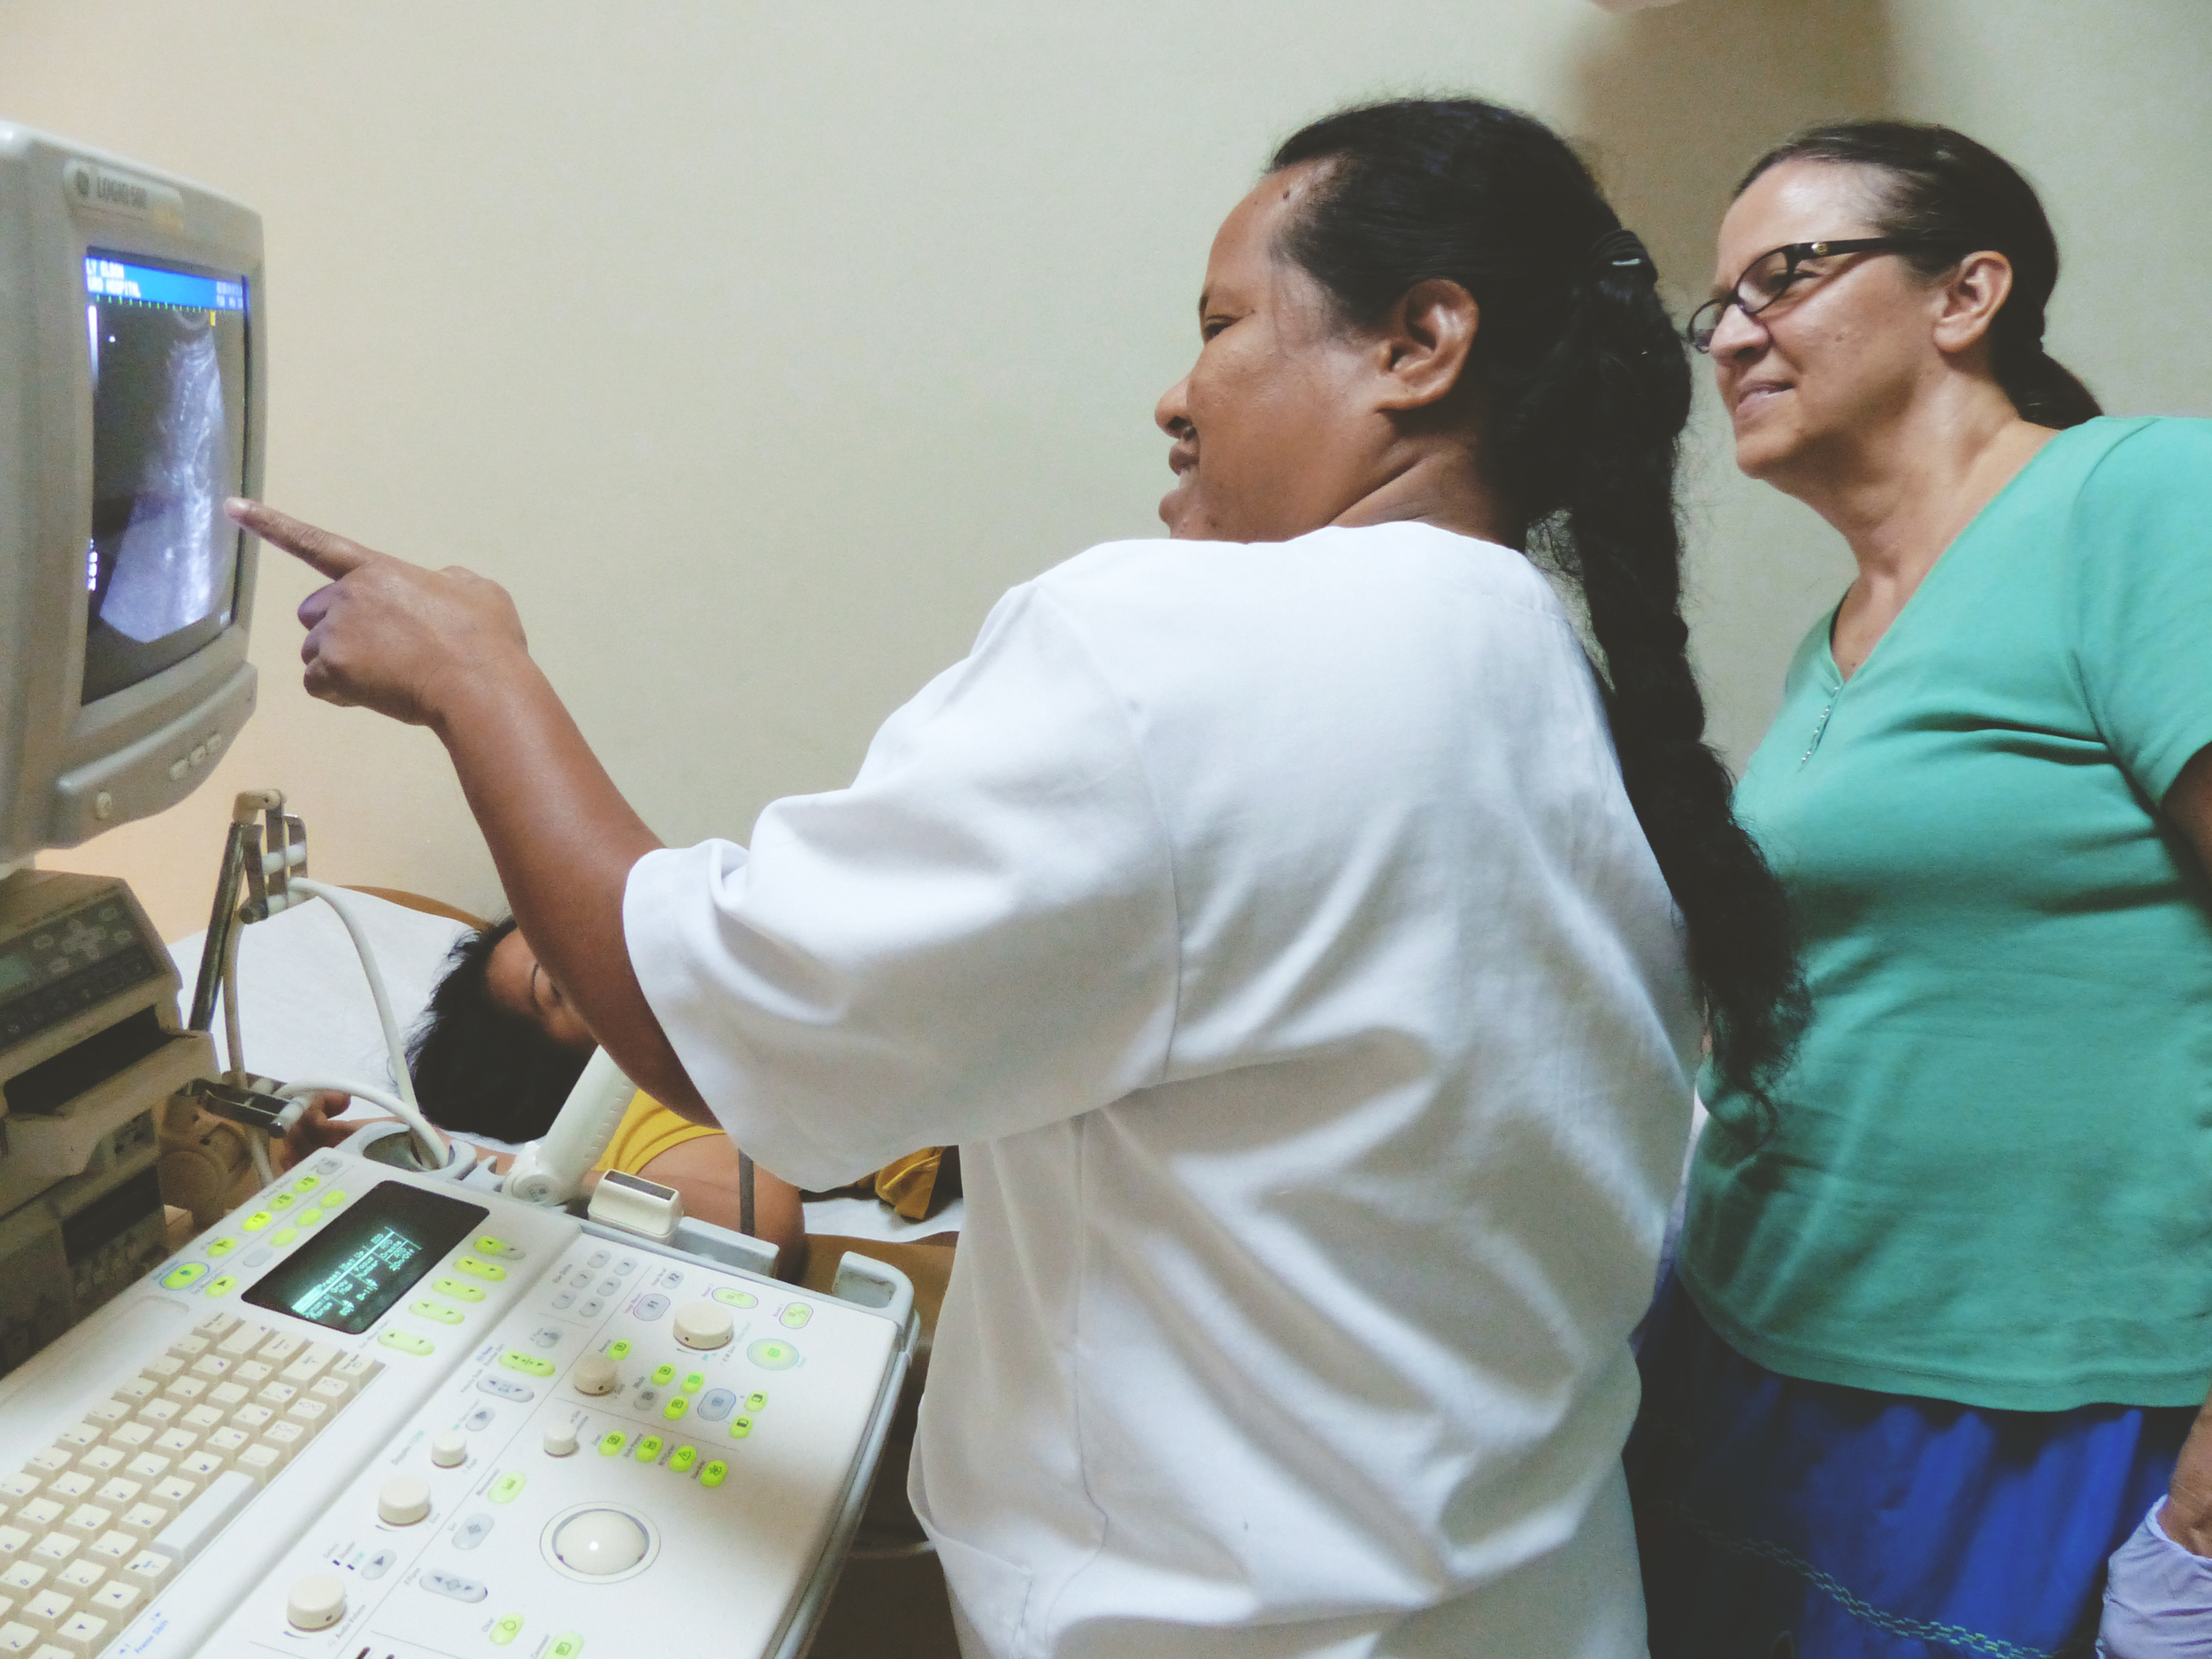 Susan Price, right, trains hospital staff in the latest ultrasound studies in 2014.